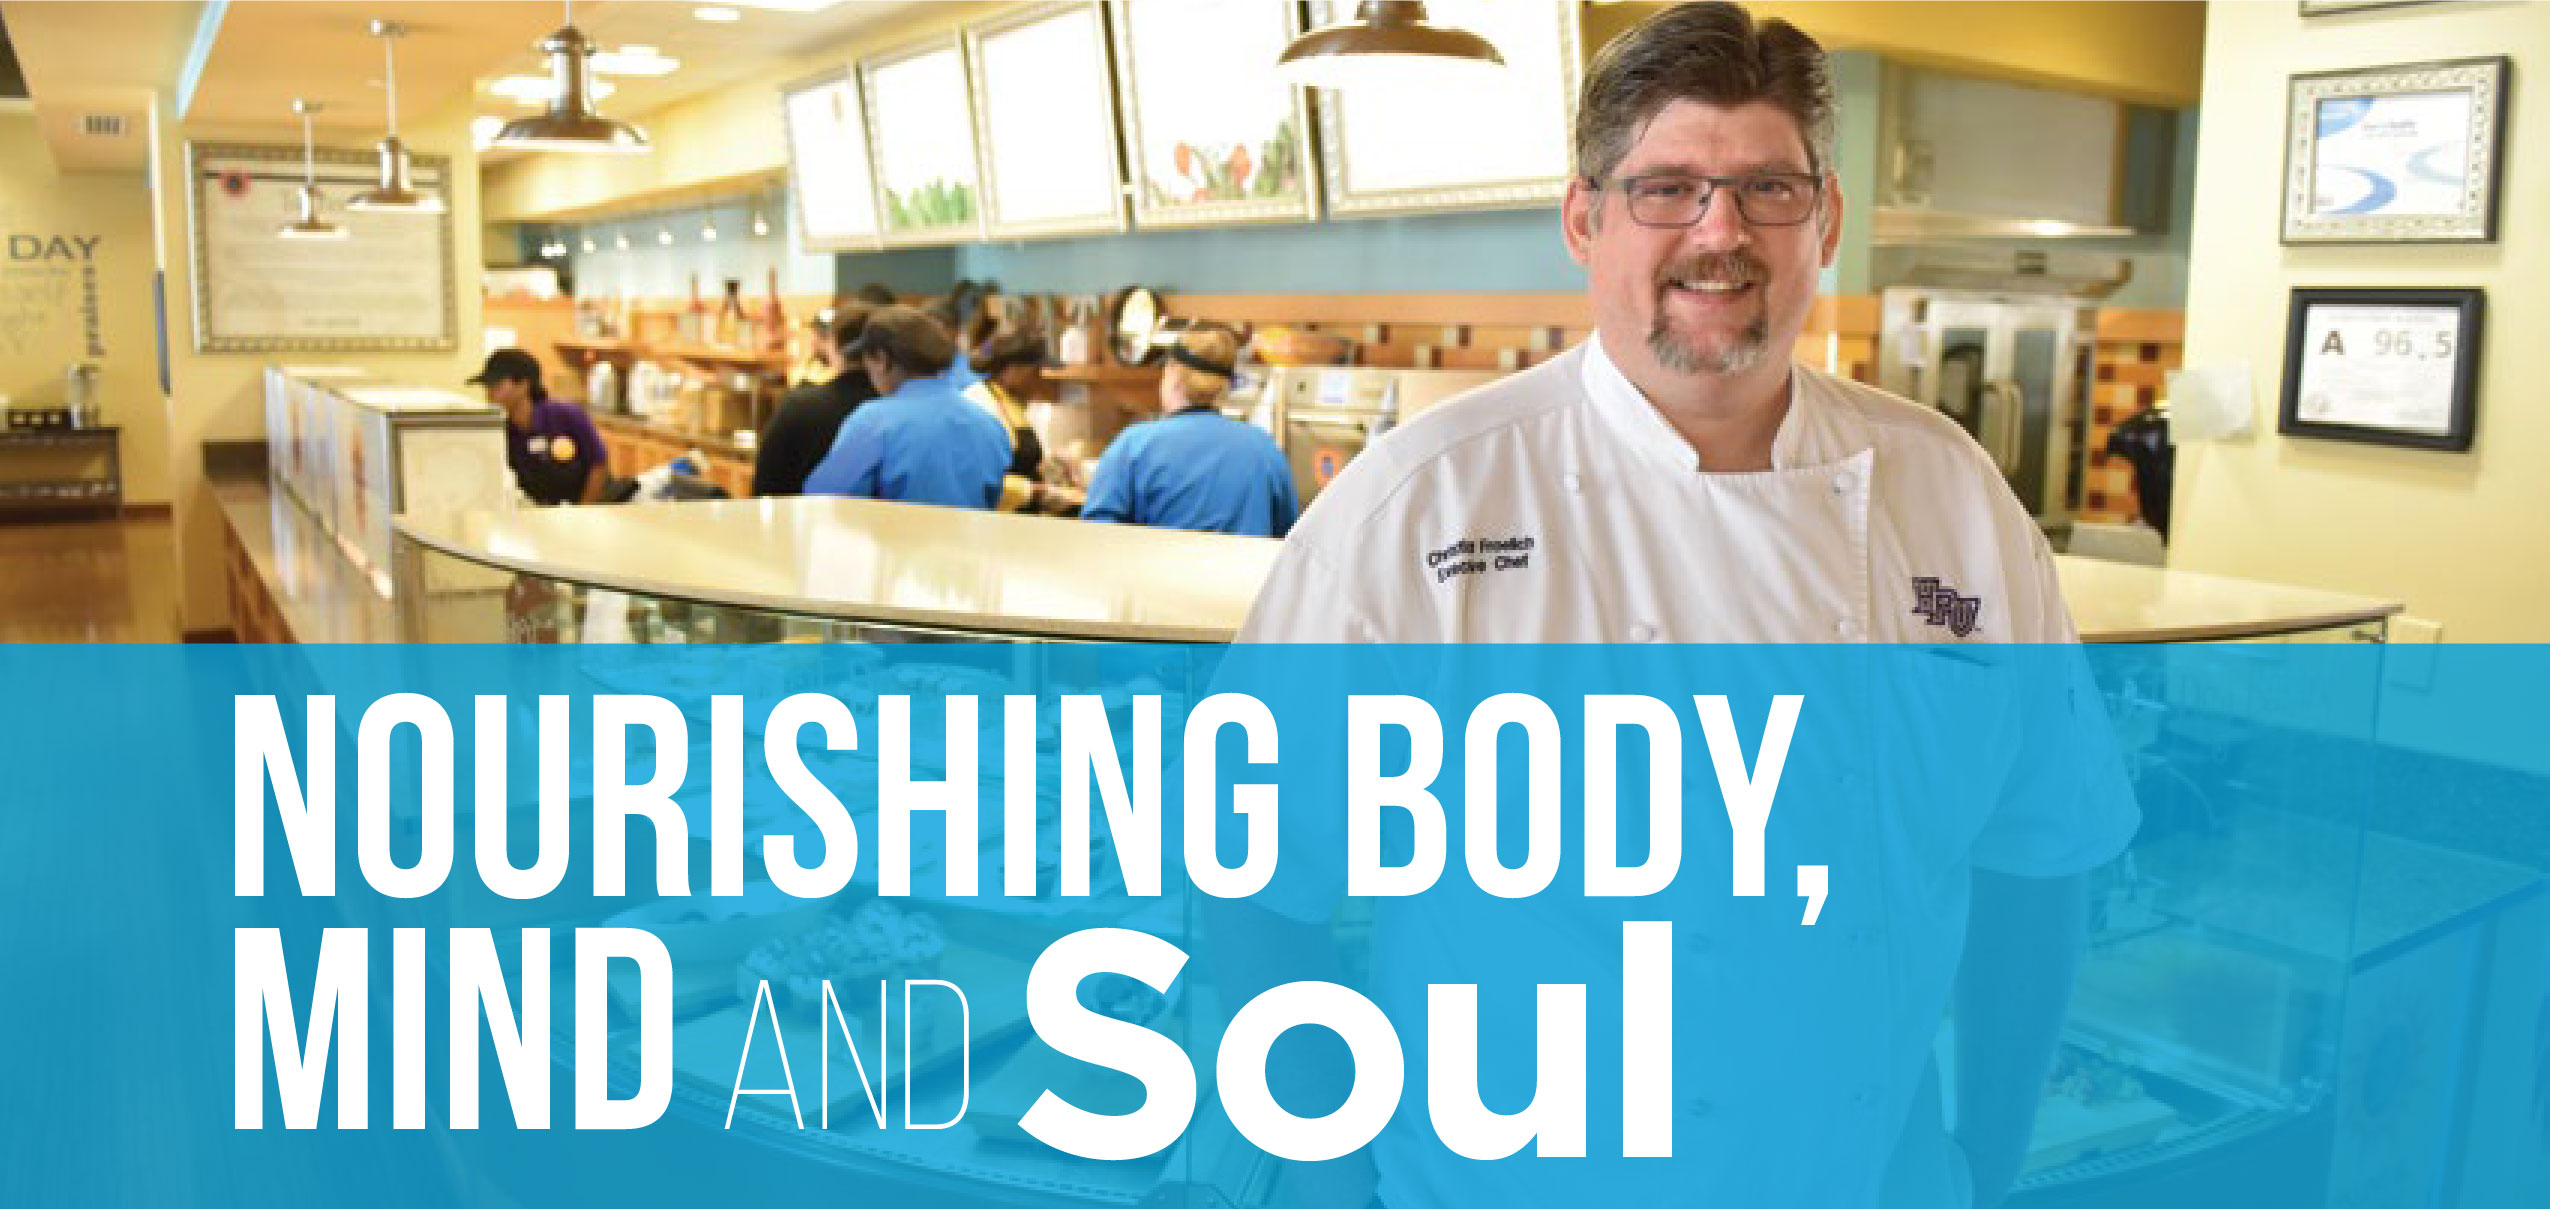 Nourishing Body, Mind and Soul, High Point University | High Point ...